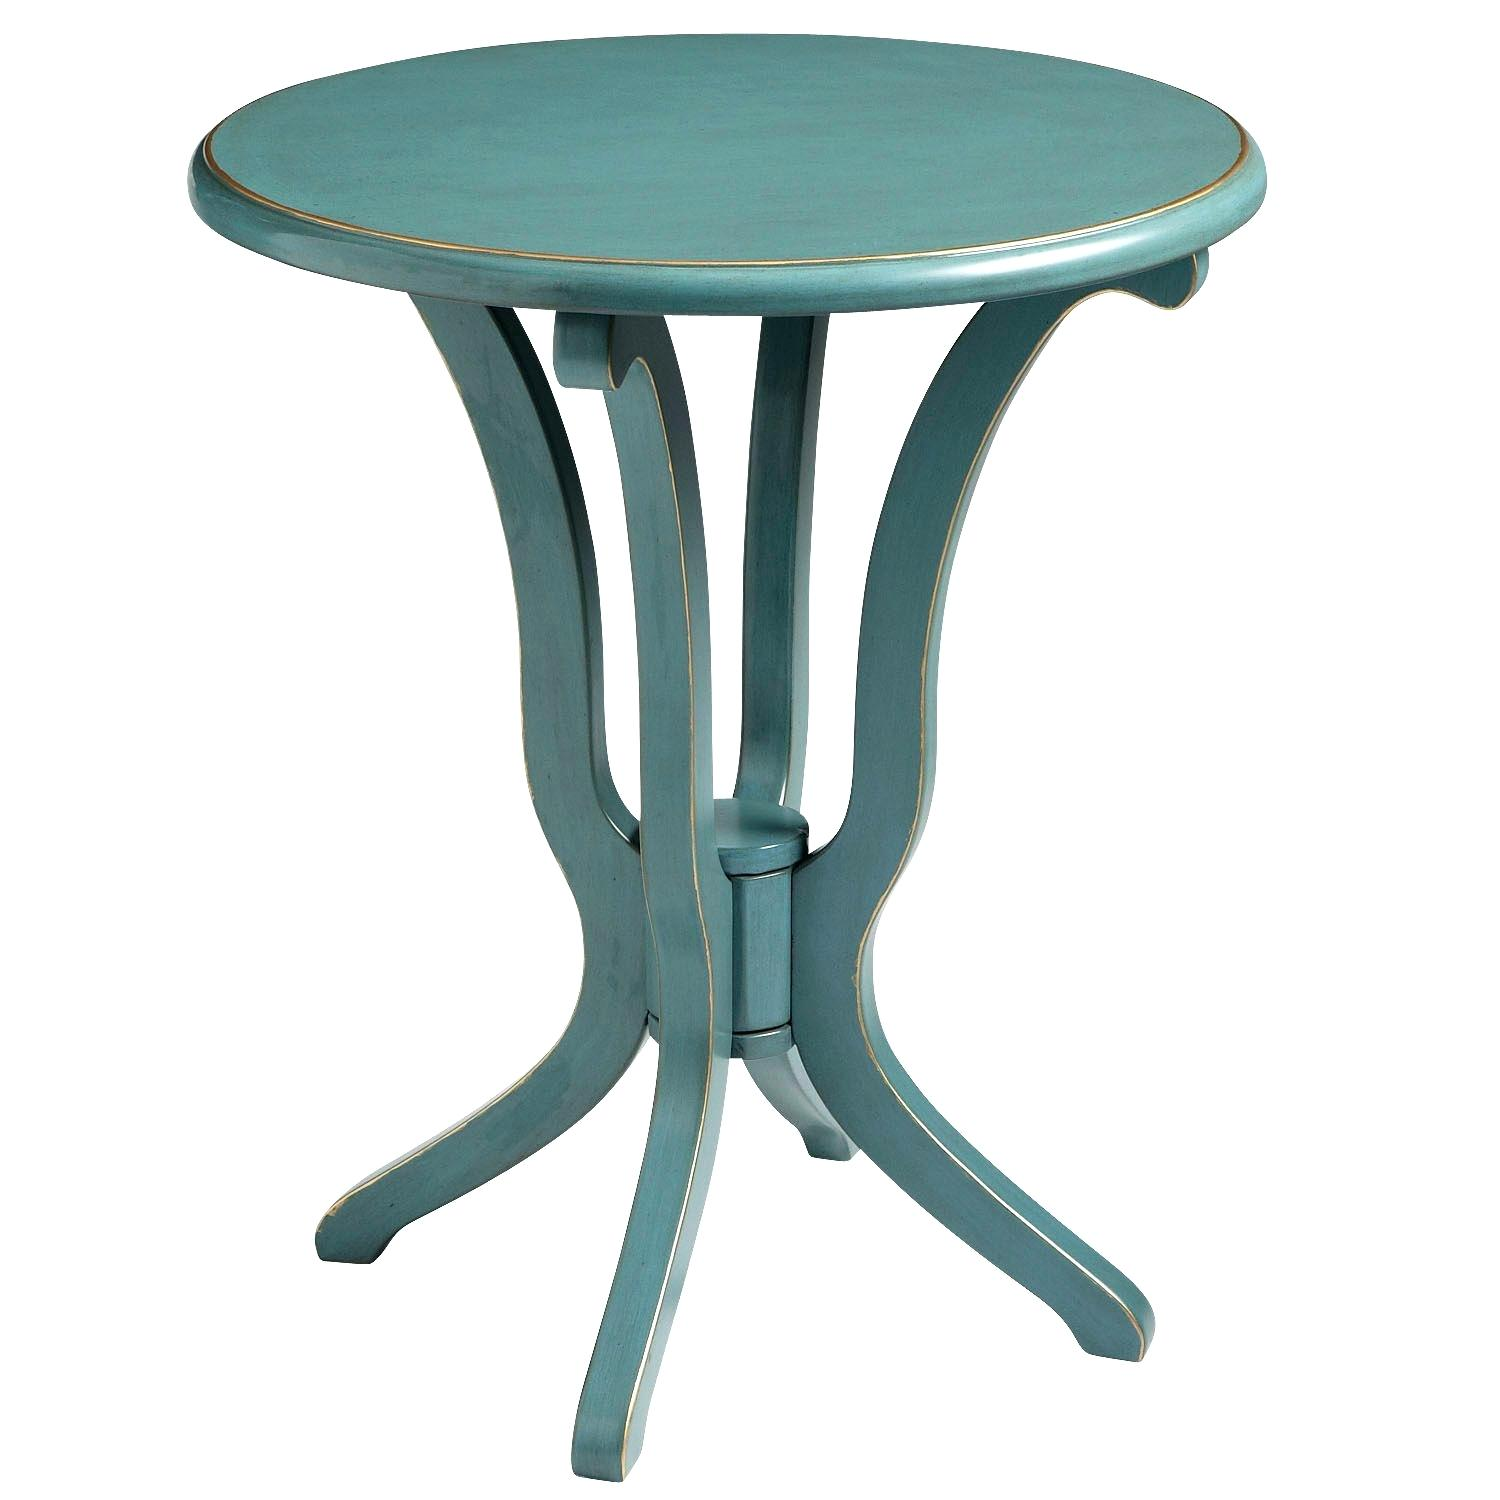 mosaic accent table pier tables kenzie lavorochogan info daffodil smoke blue zoom save concrete coffee and end target kindle fire mission console mirrors drawer dishwasher black